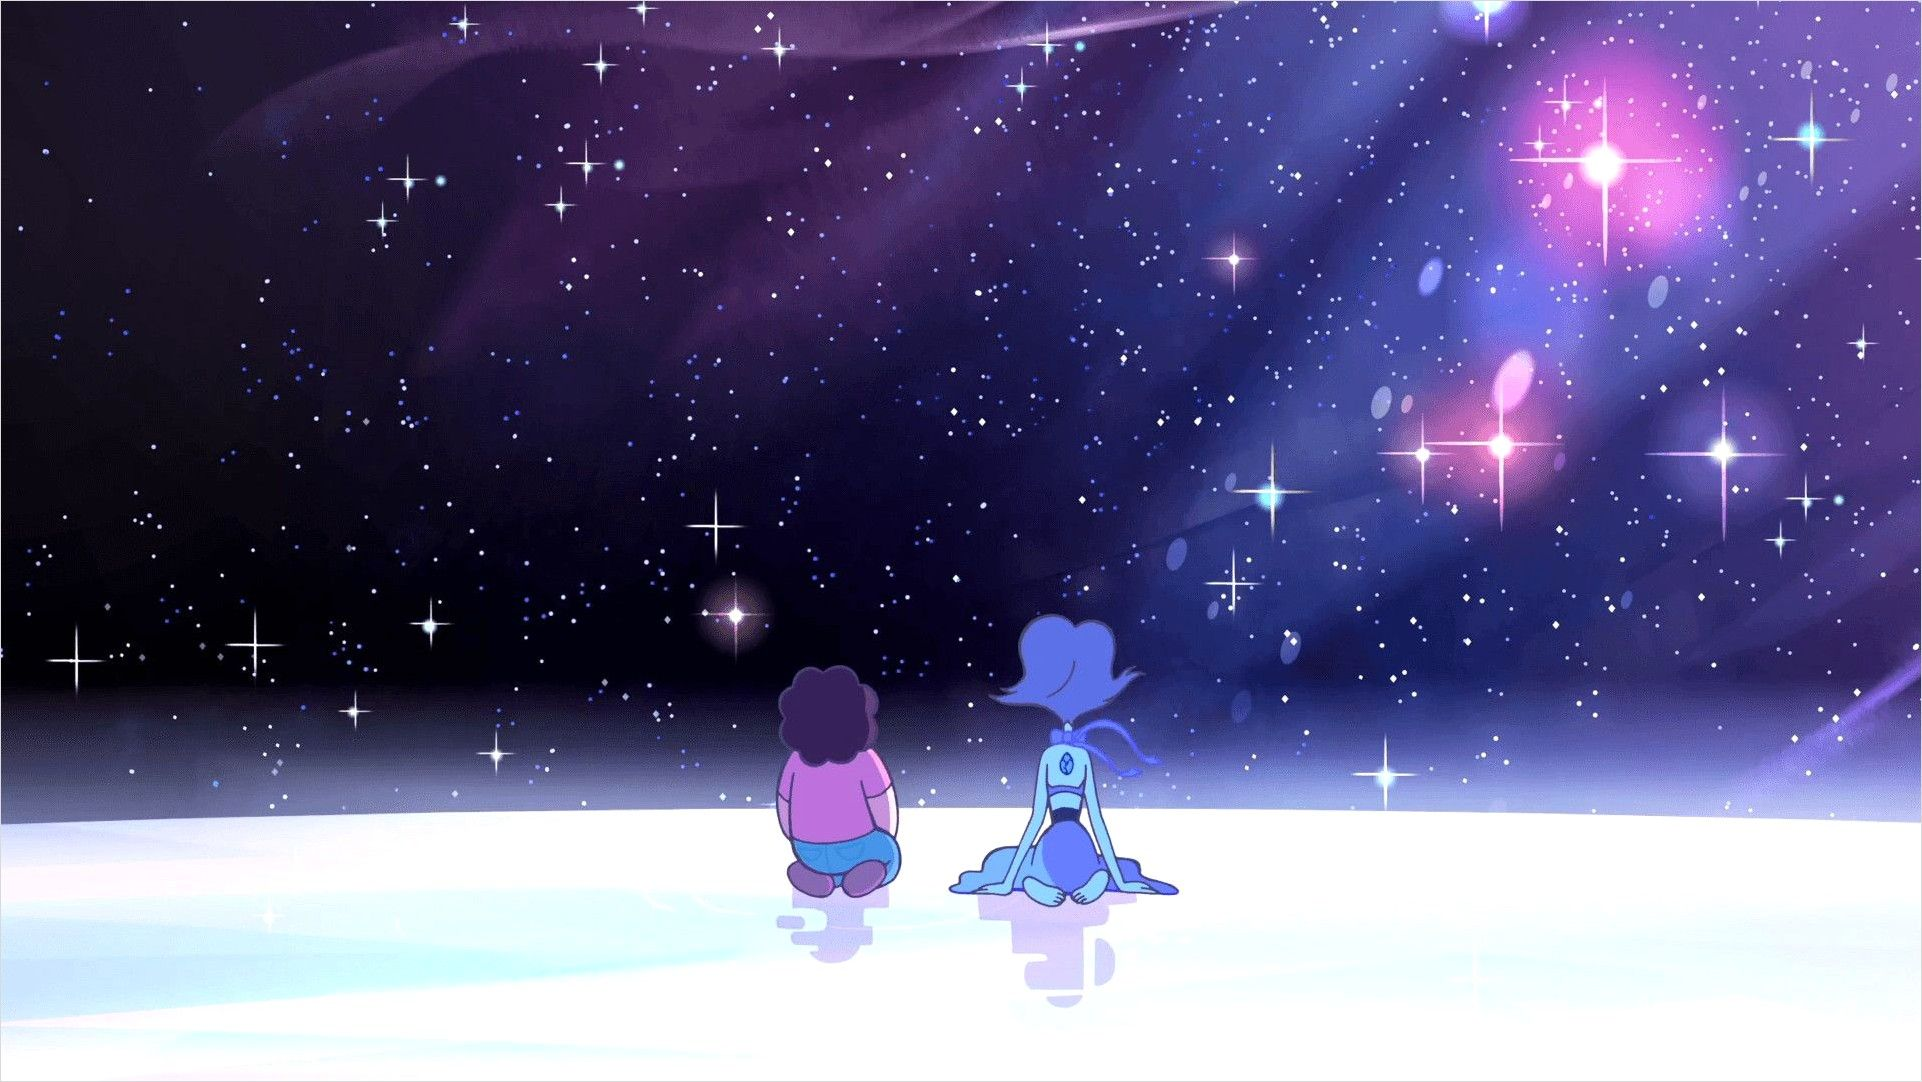 4k Dual Screen Steven Universe Wallpaper In 2020 Steven Universe Wallpaper Lapis Lazuli Steven Universe Steven Universe Background